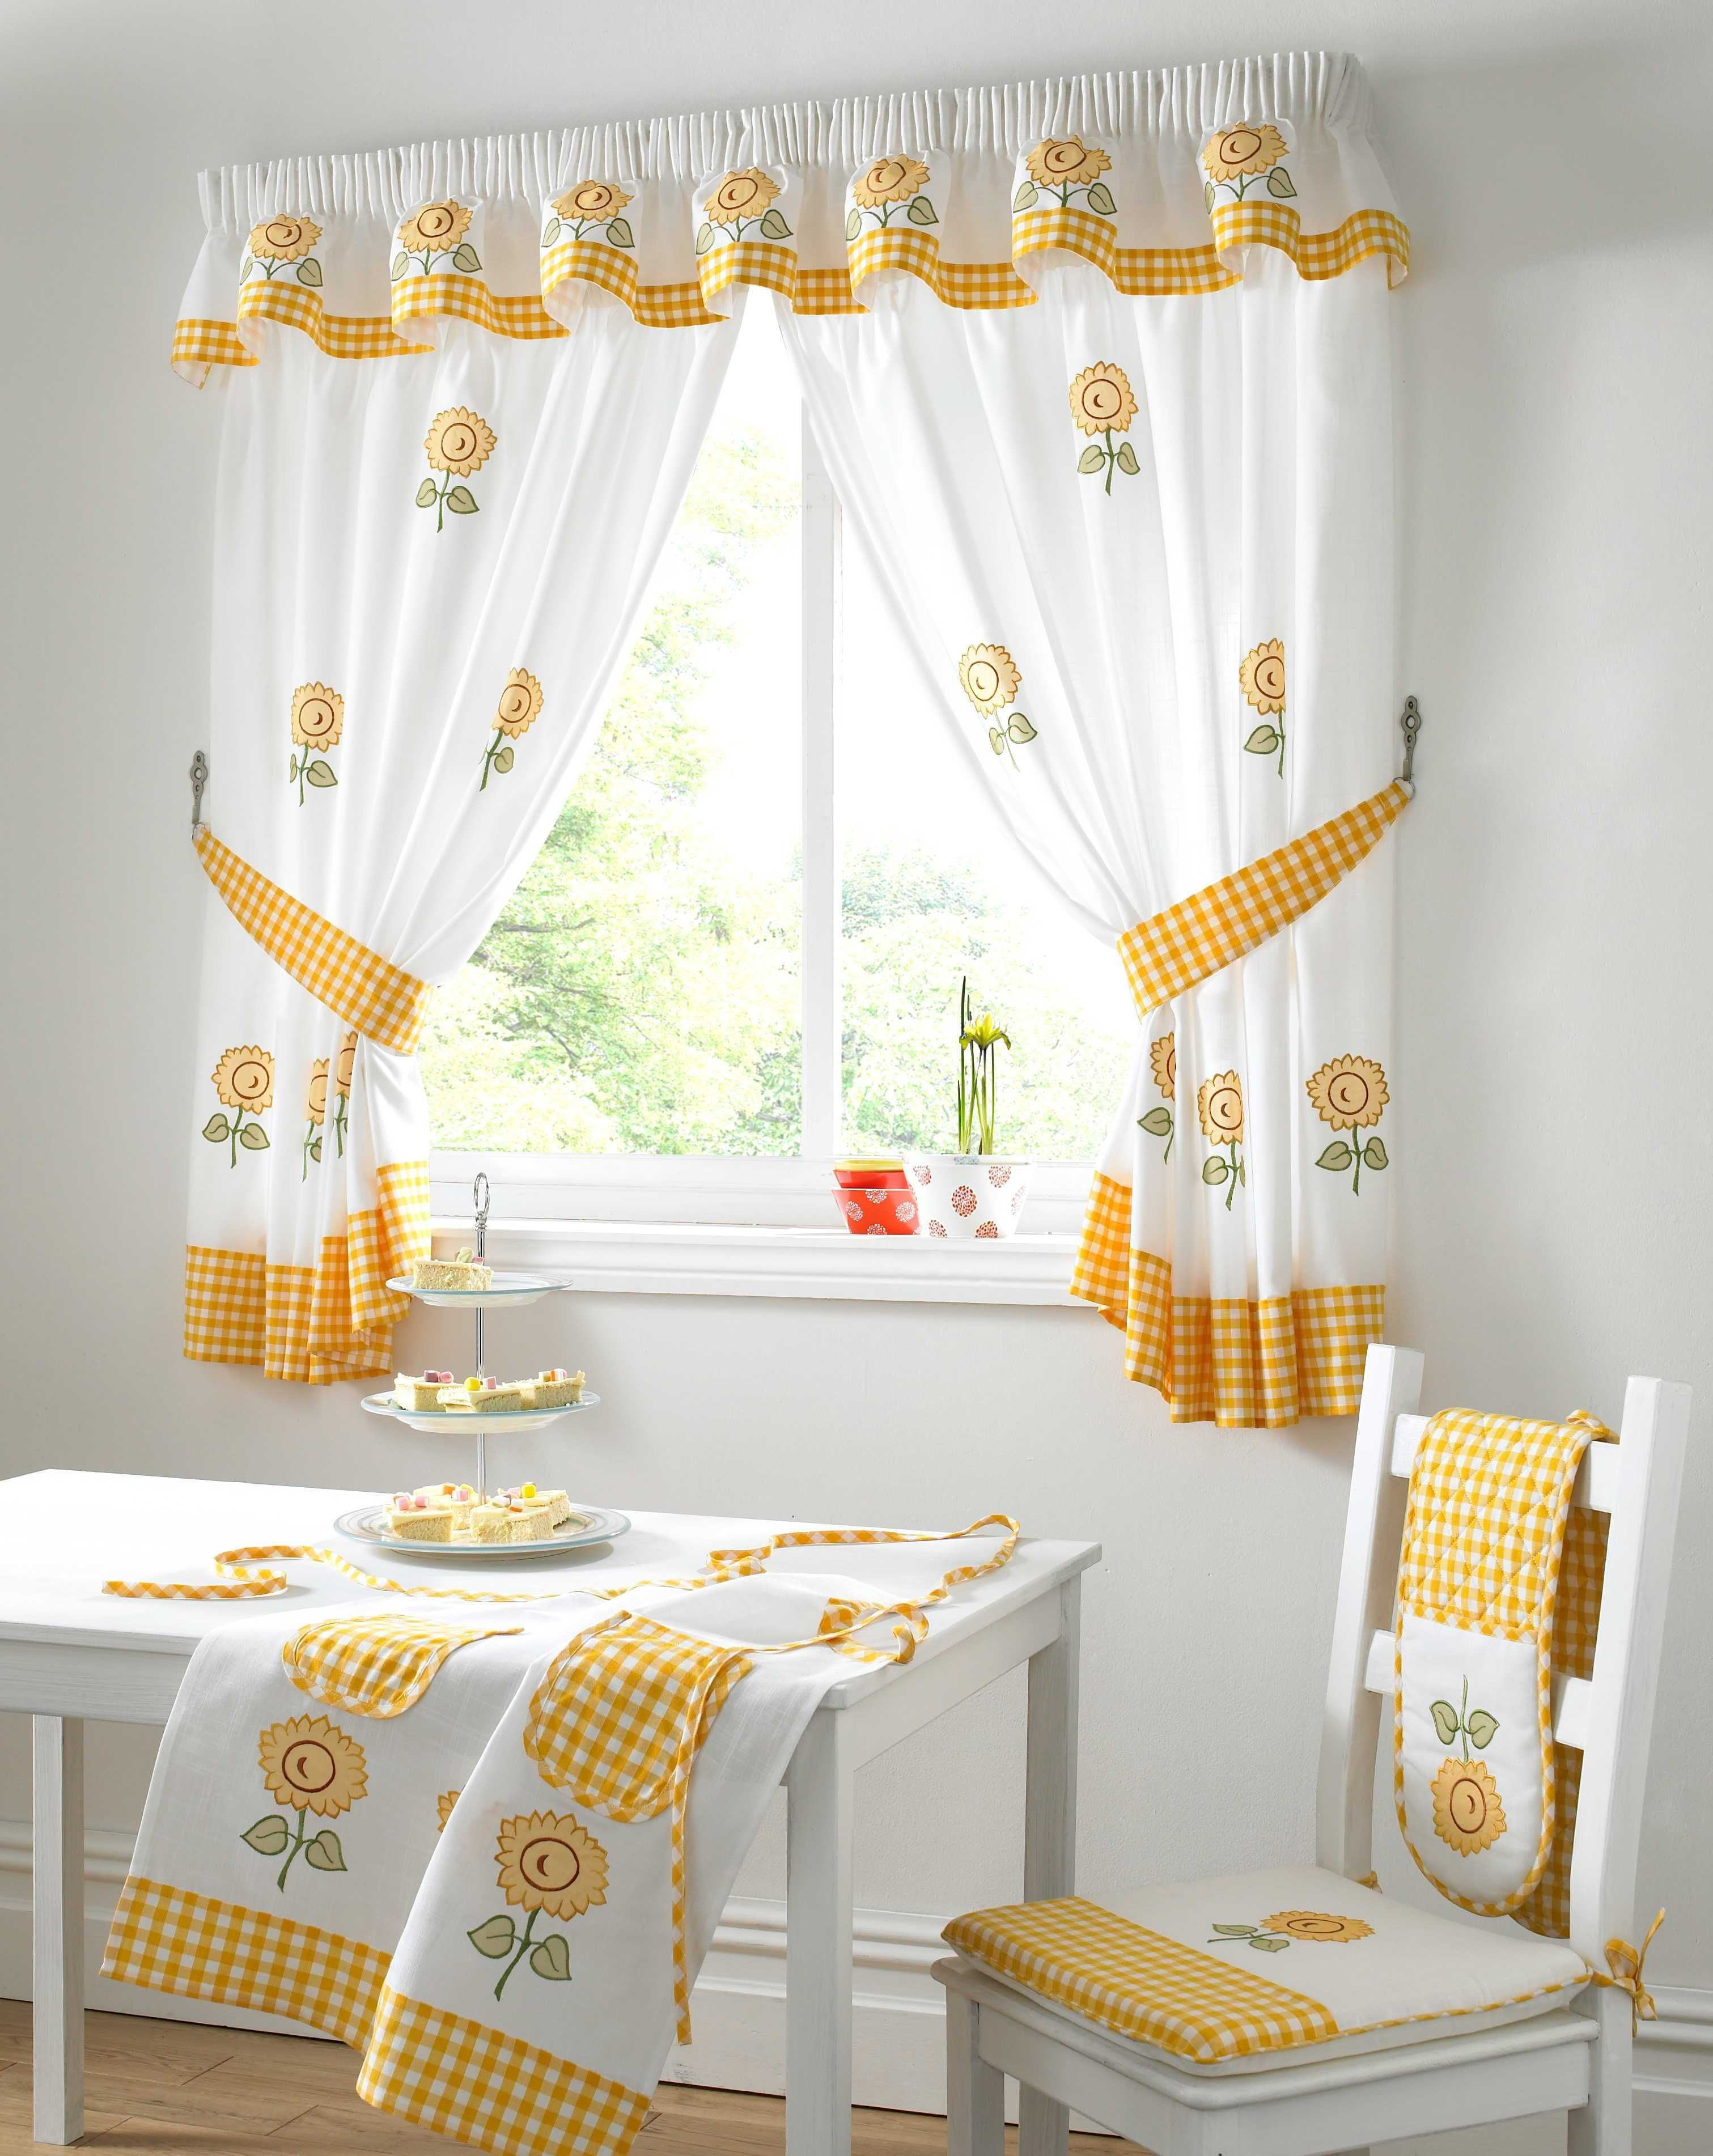 27 Savory Retro Kitchen Curtains To Be Considered Kitchen